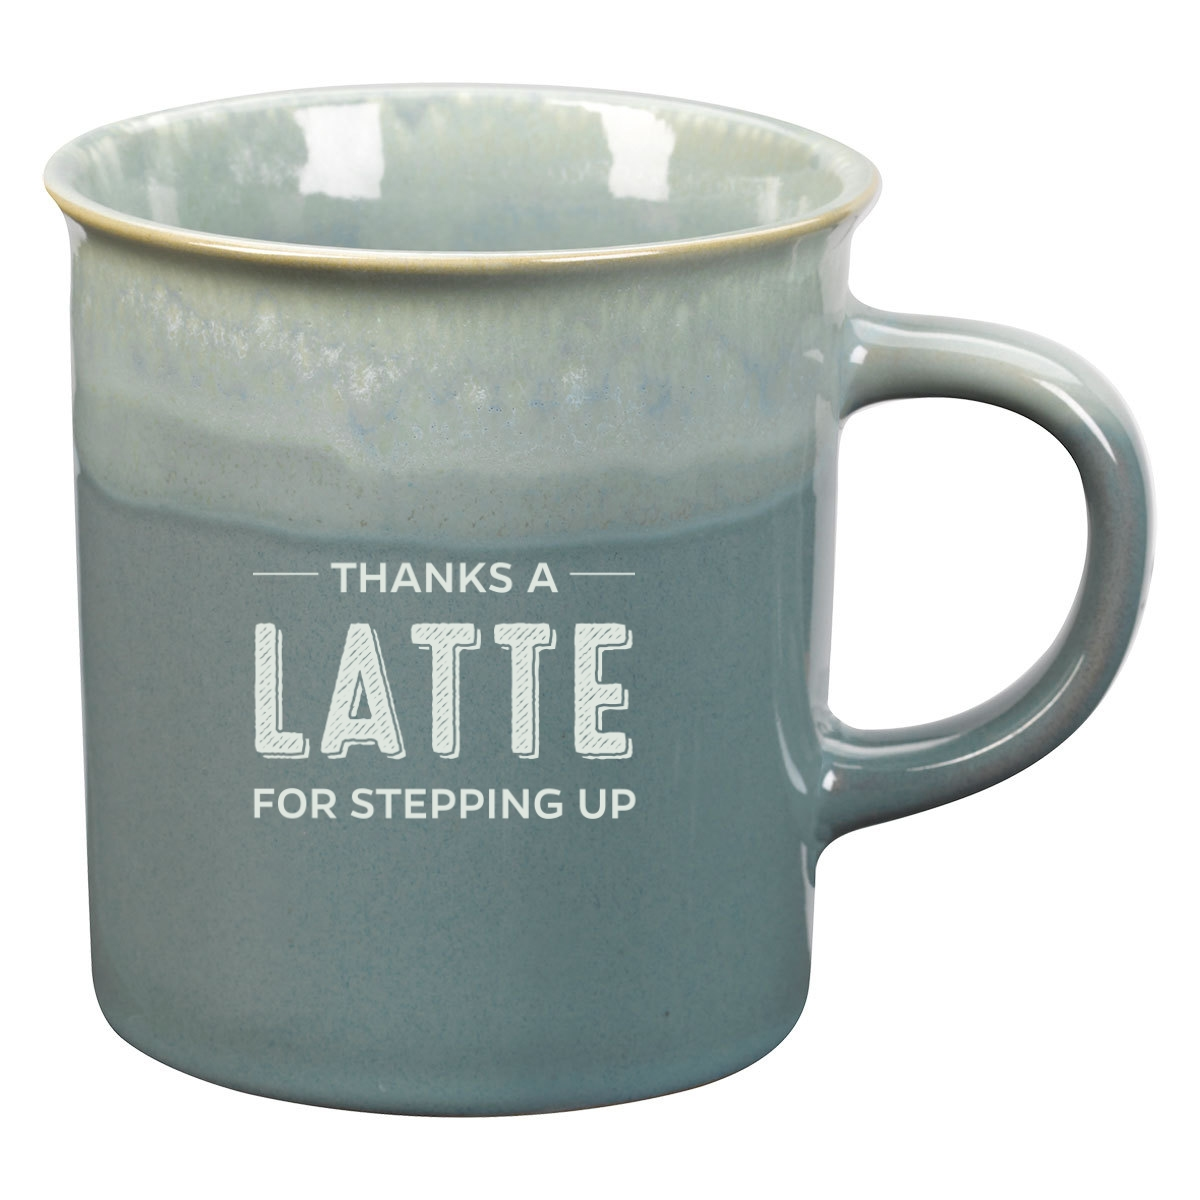 Coffee mug with volunteer appreciation logo